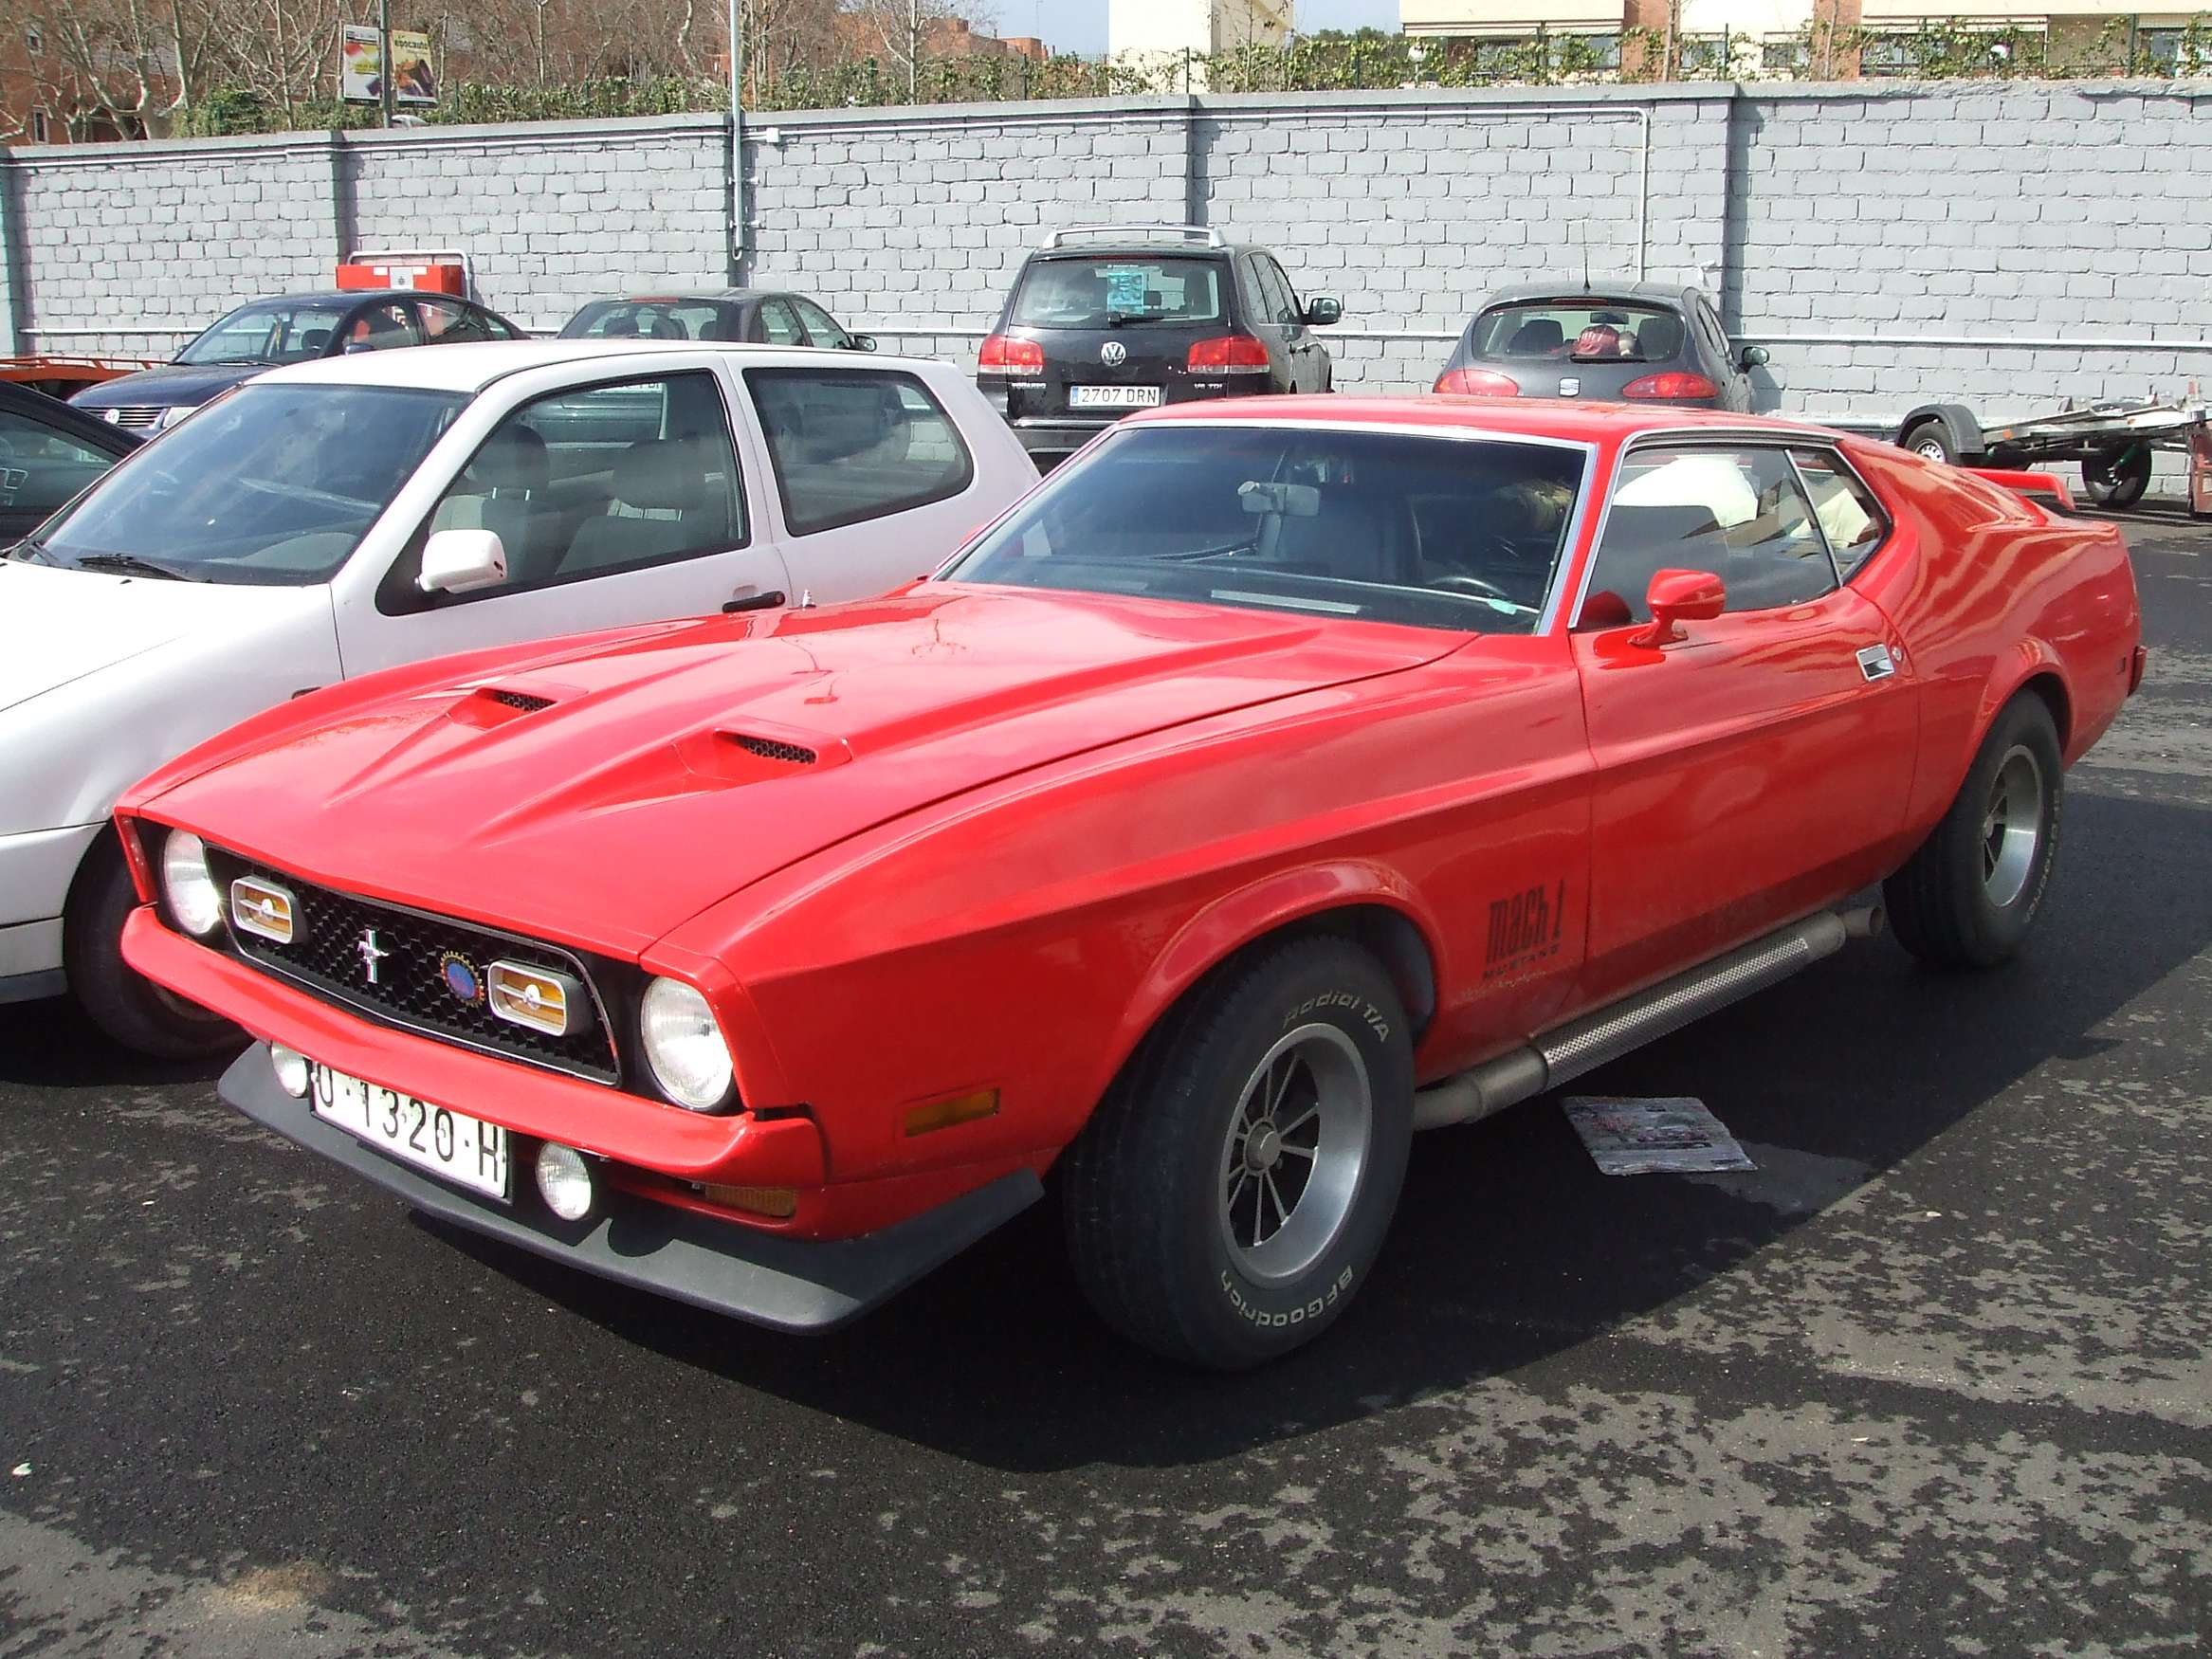 Ford Mustang Mach 1 #9478978